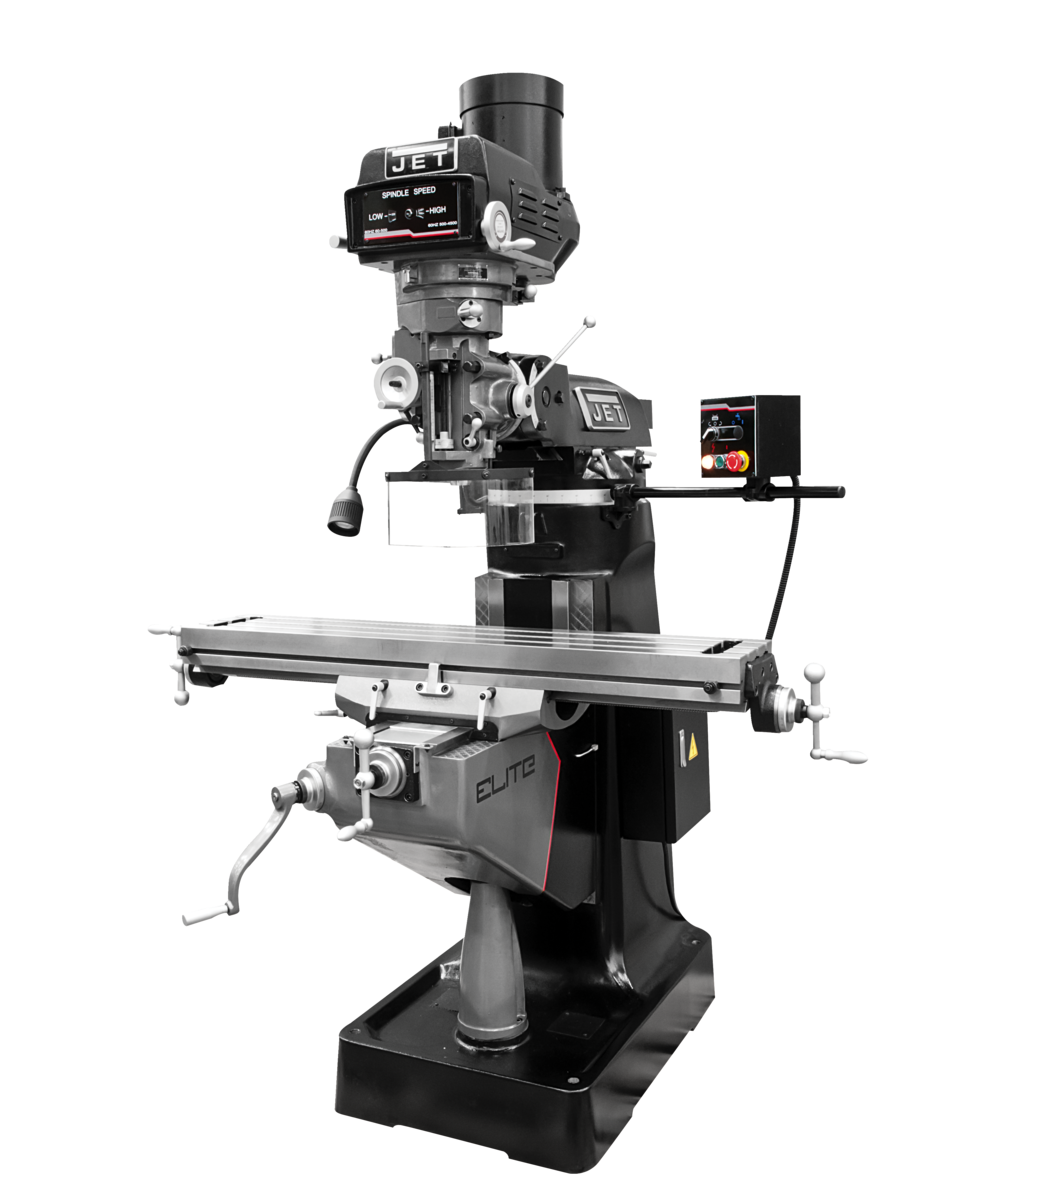 ETM-949 Mill with 3-Axis Newall DP700 (Knee) DRO and Servo X-Axis Powerfeed and USA Air Powered Draw Bar